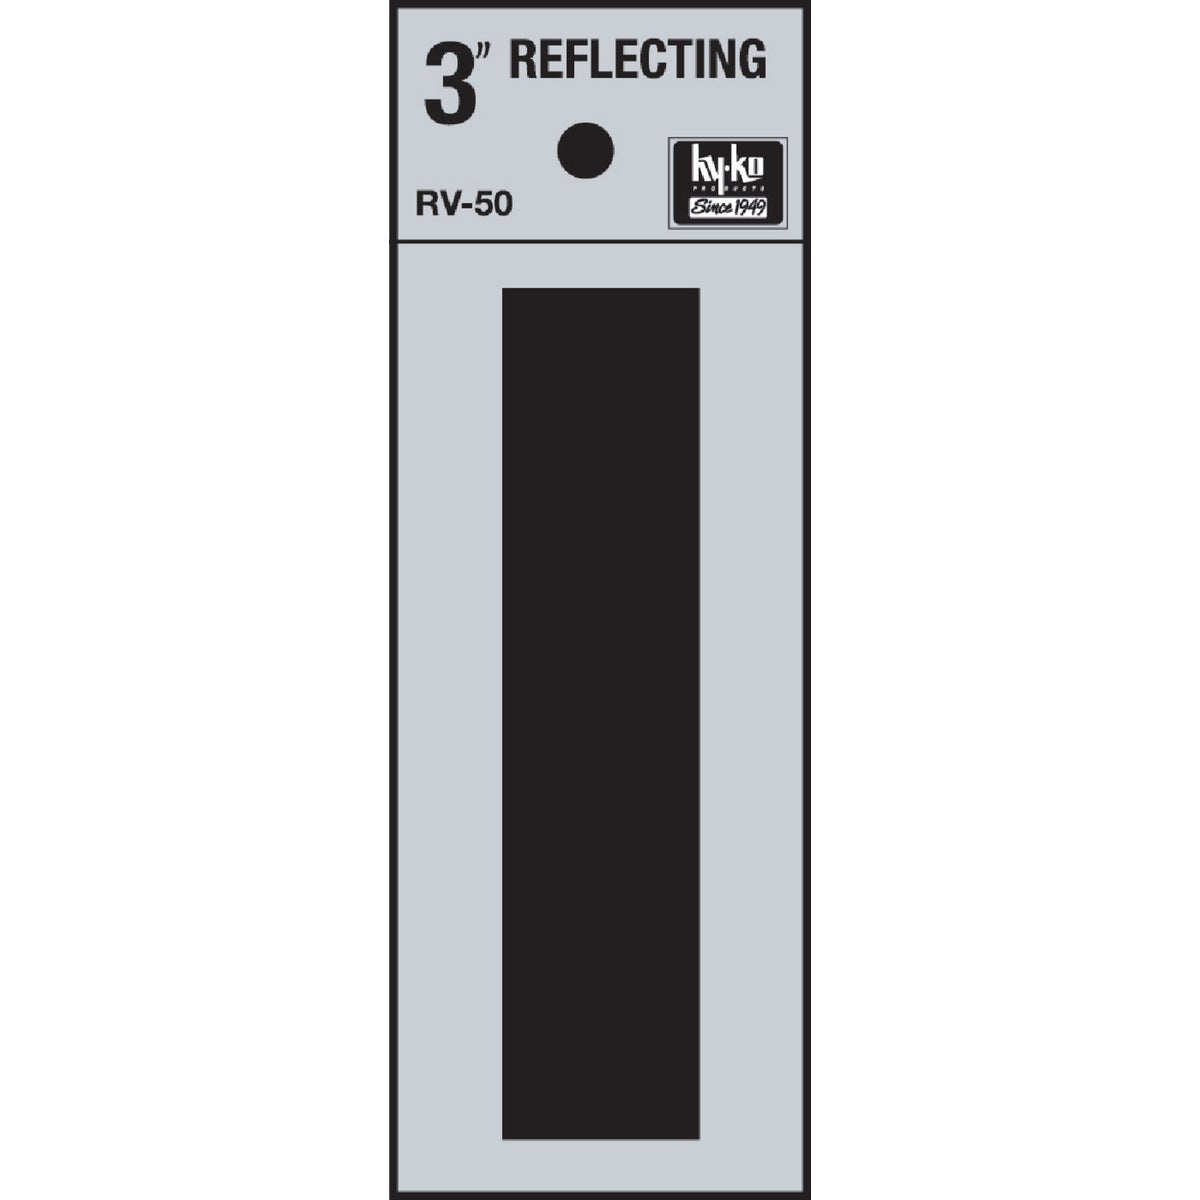 "3"" REFLECT LETTER I - RV-50I by Hy Ko Prods Co"